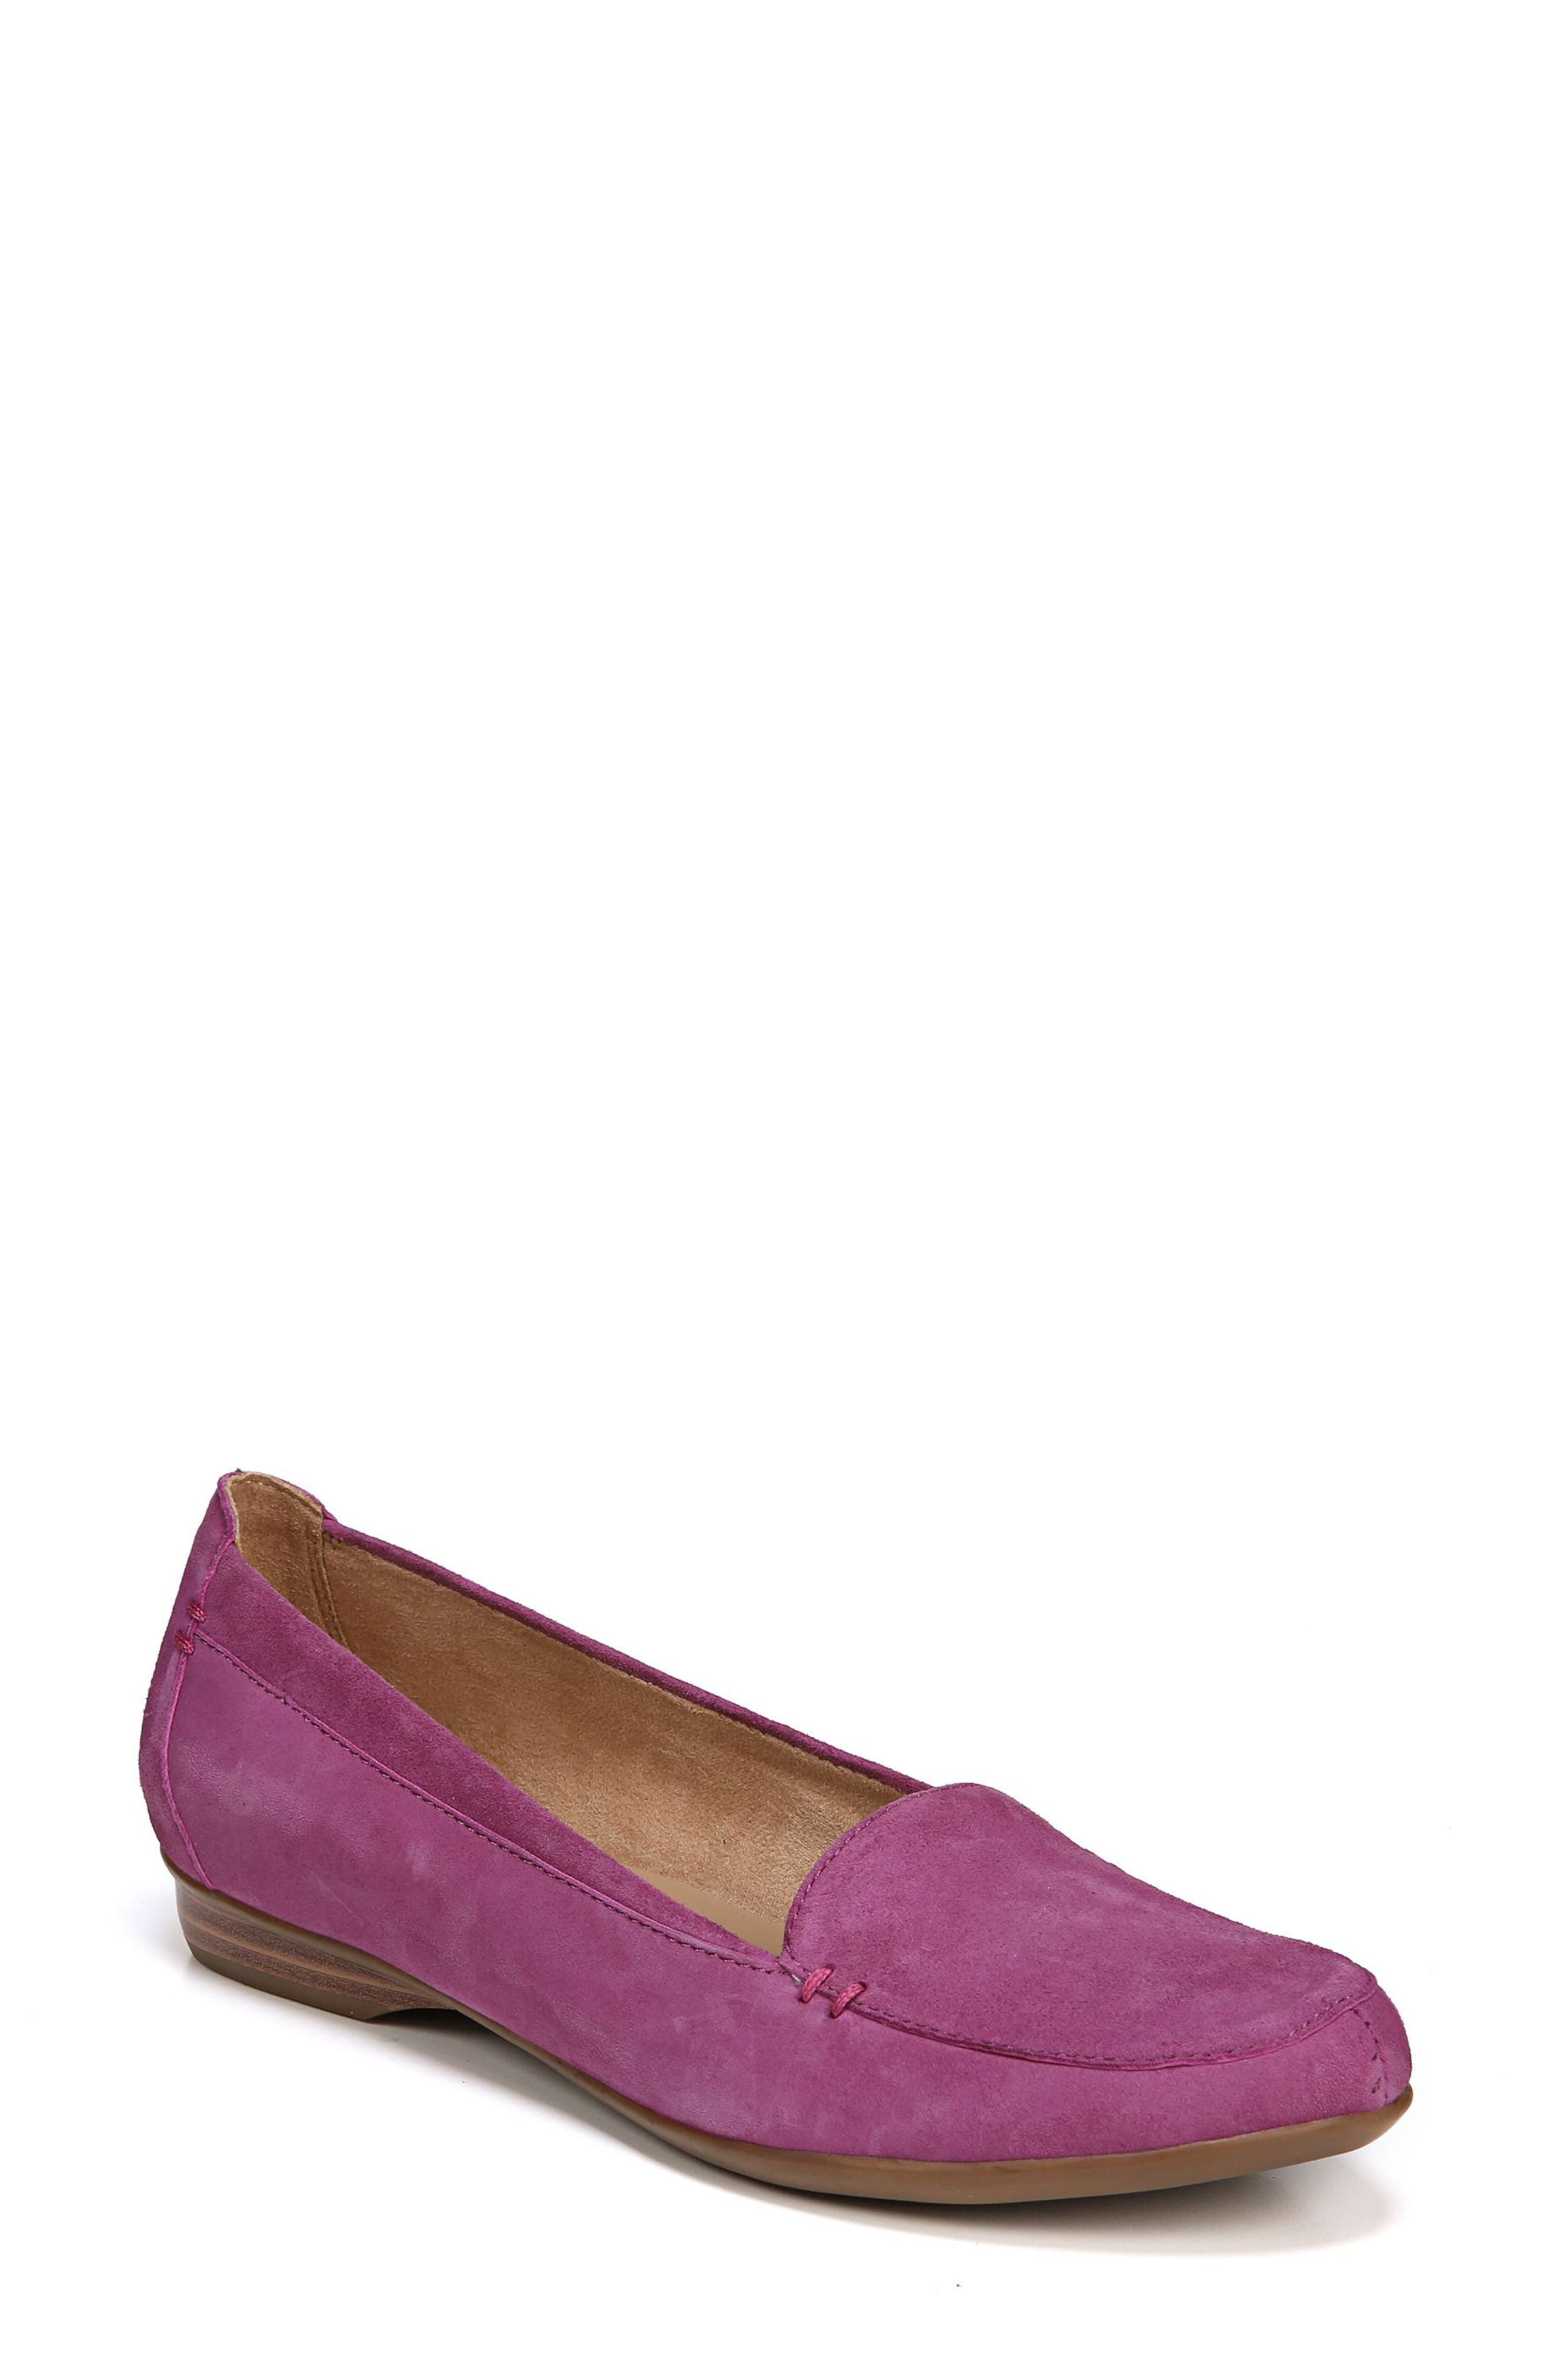 'Saban' Leather Loafer,                         Main,                         color, Radiant Orchid Suede